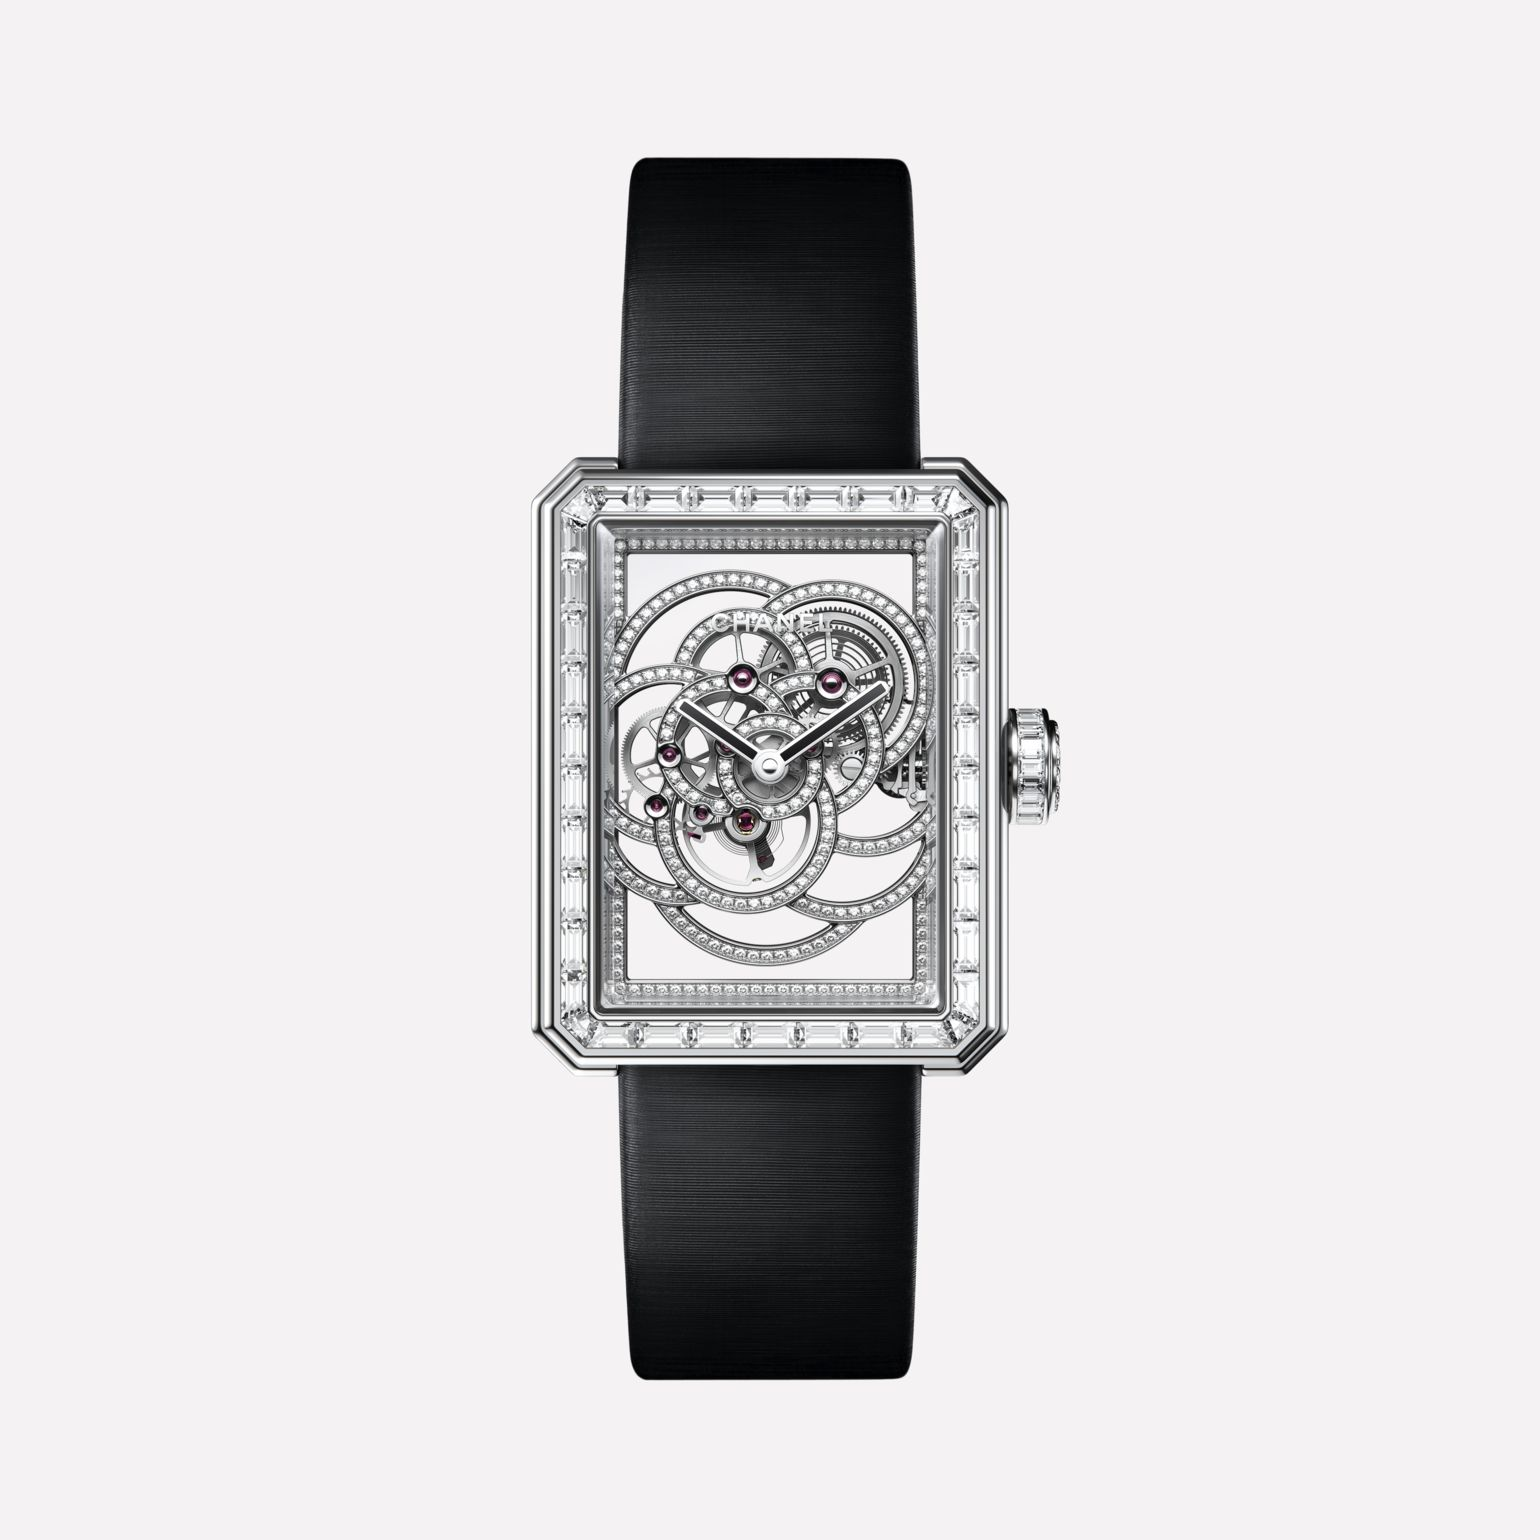 Première Camélia Skeleton Watch White gold, case, bezel, skeleton and crown set with baguette-cut diamonds